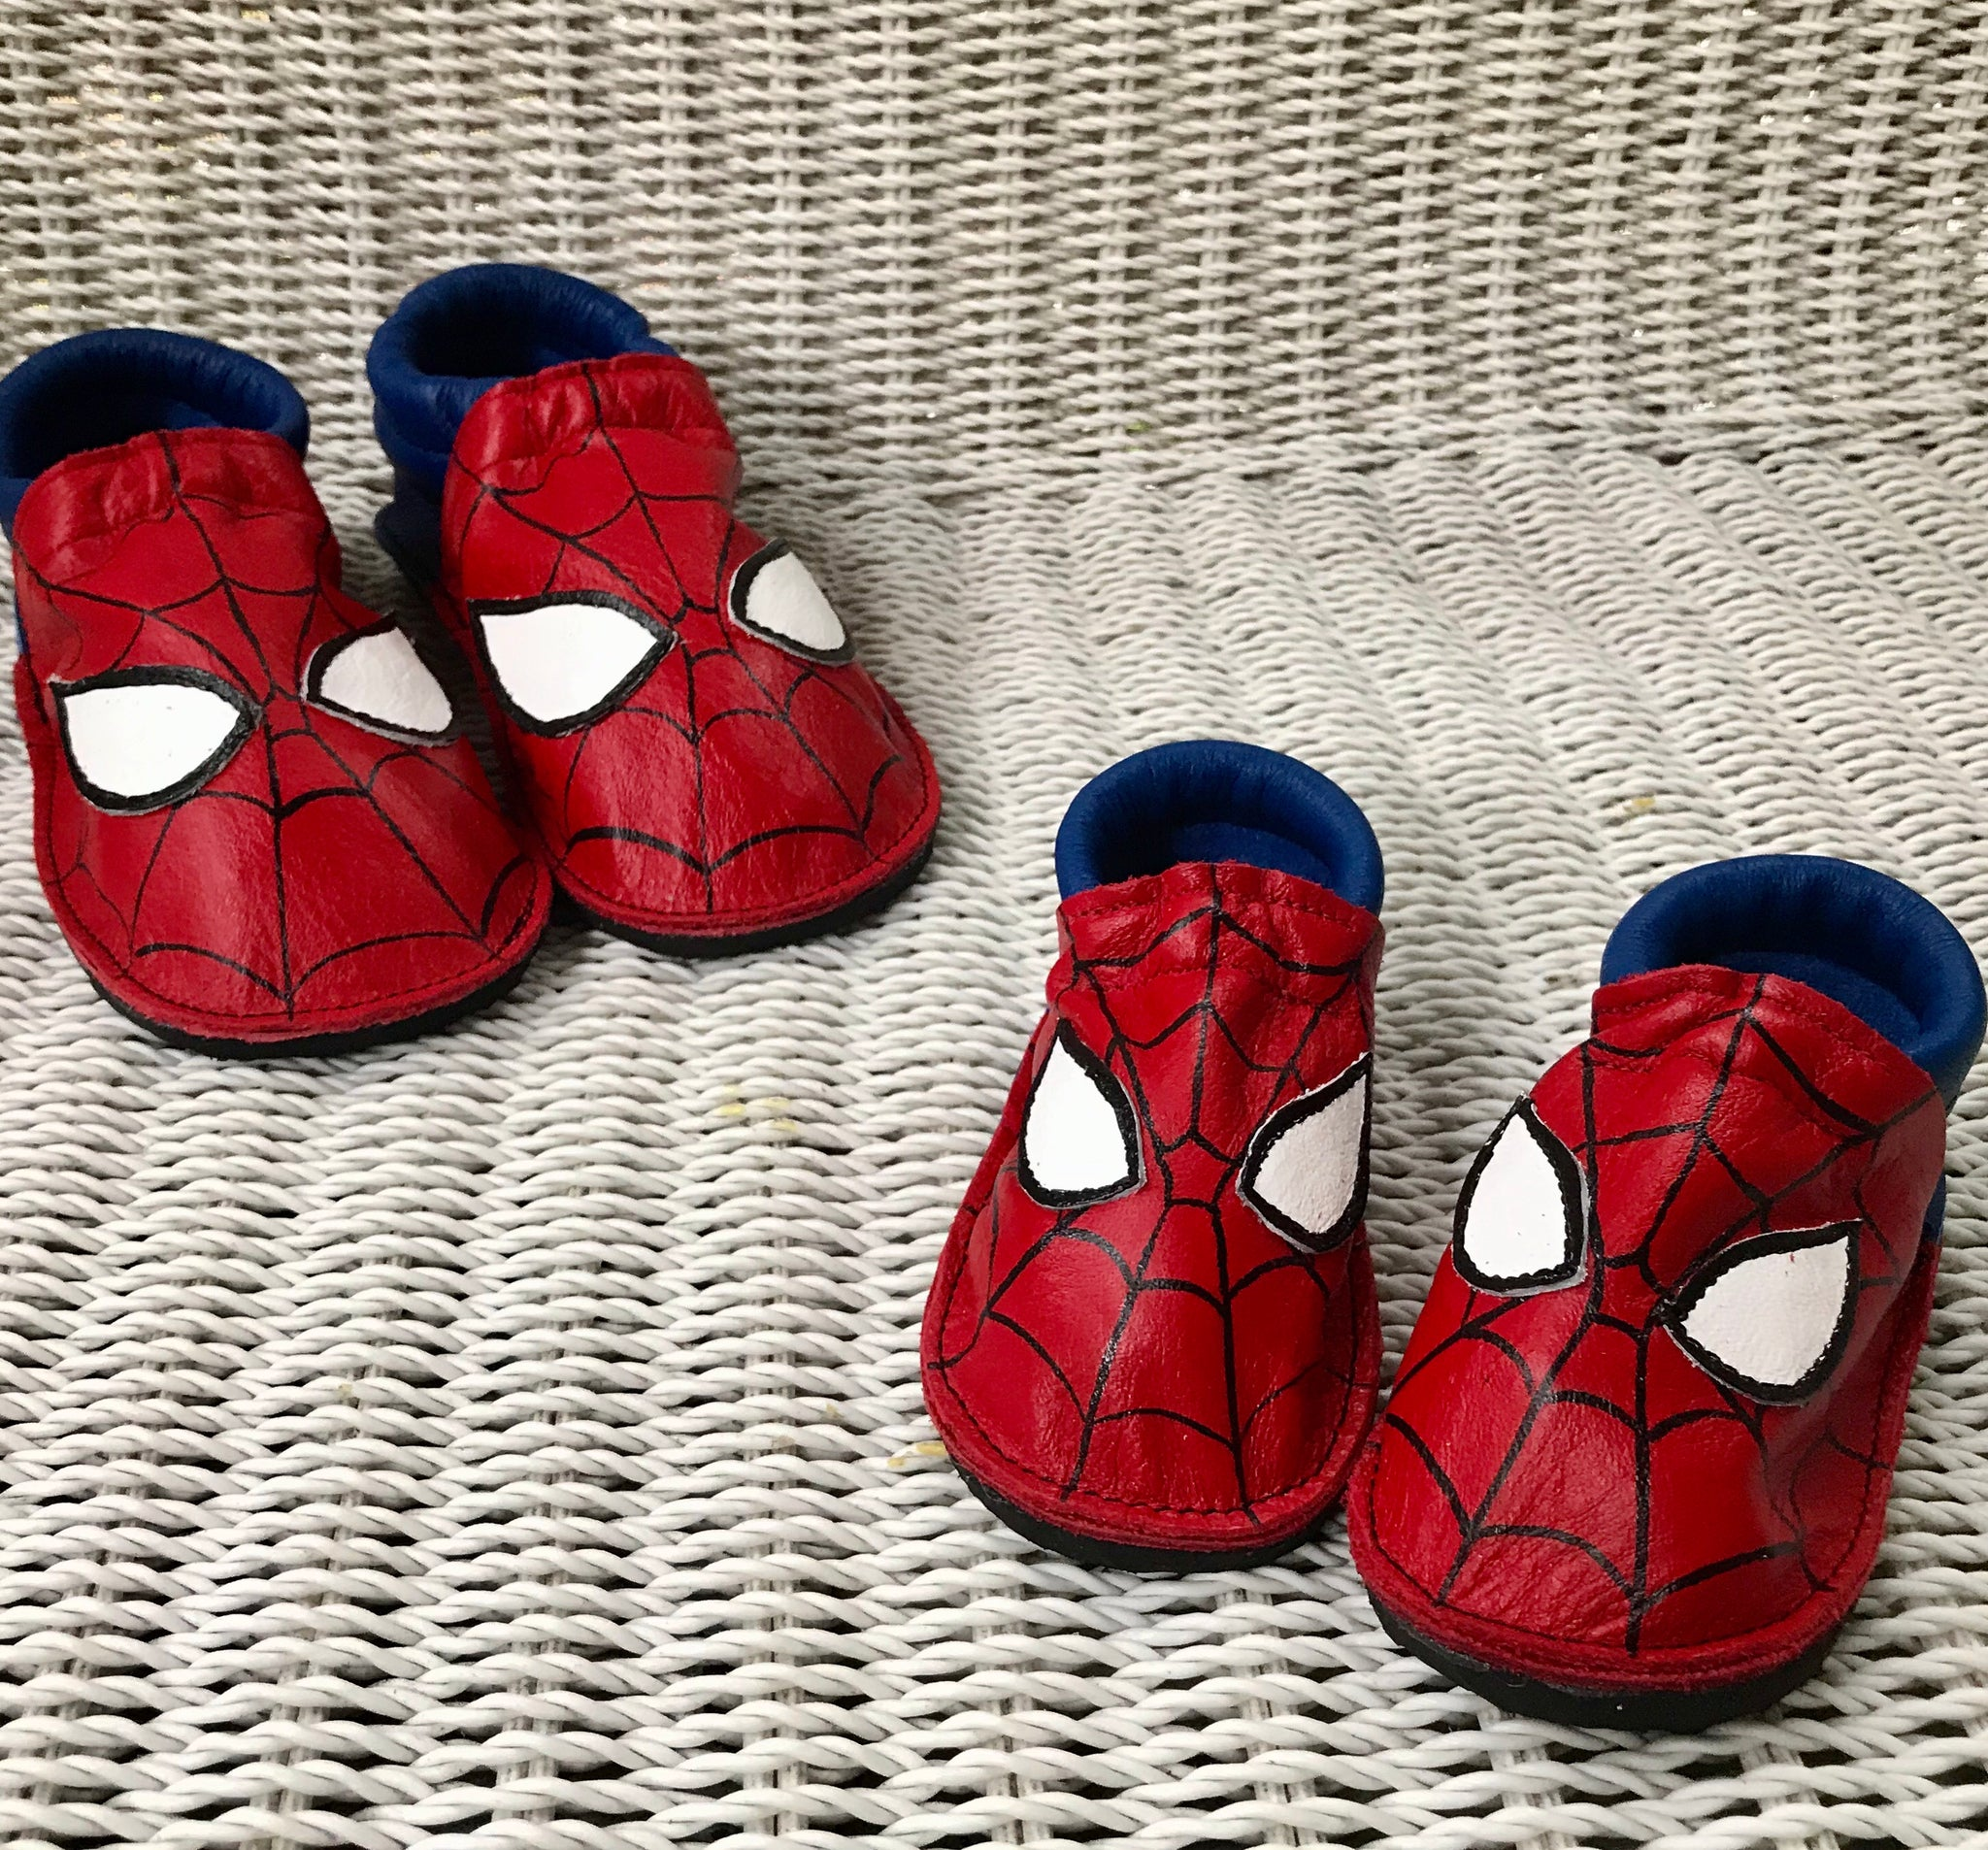 Spider Moccs with rubber soles